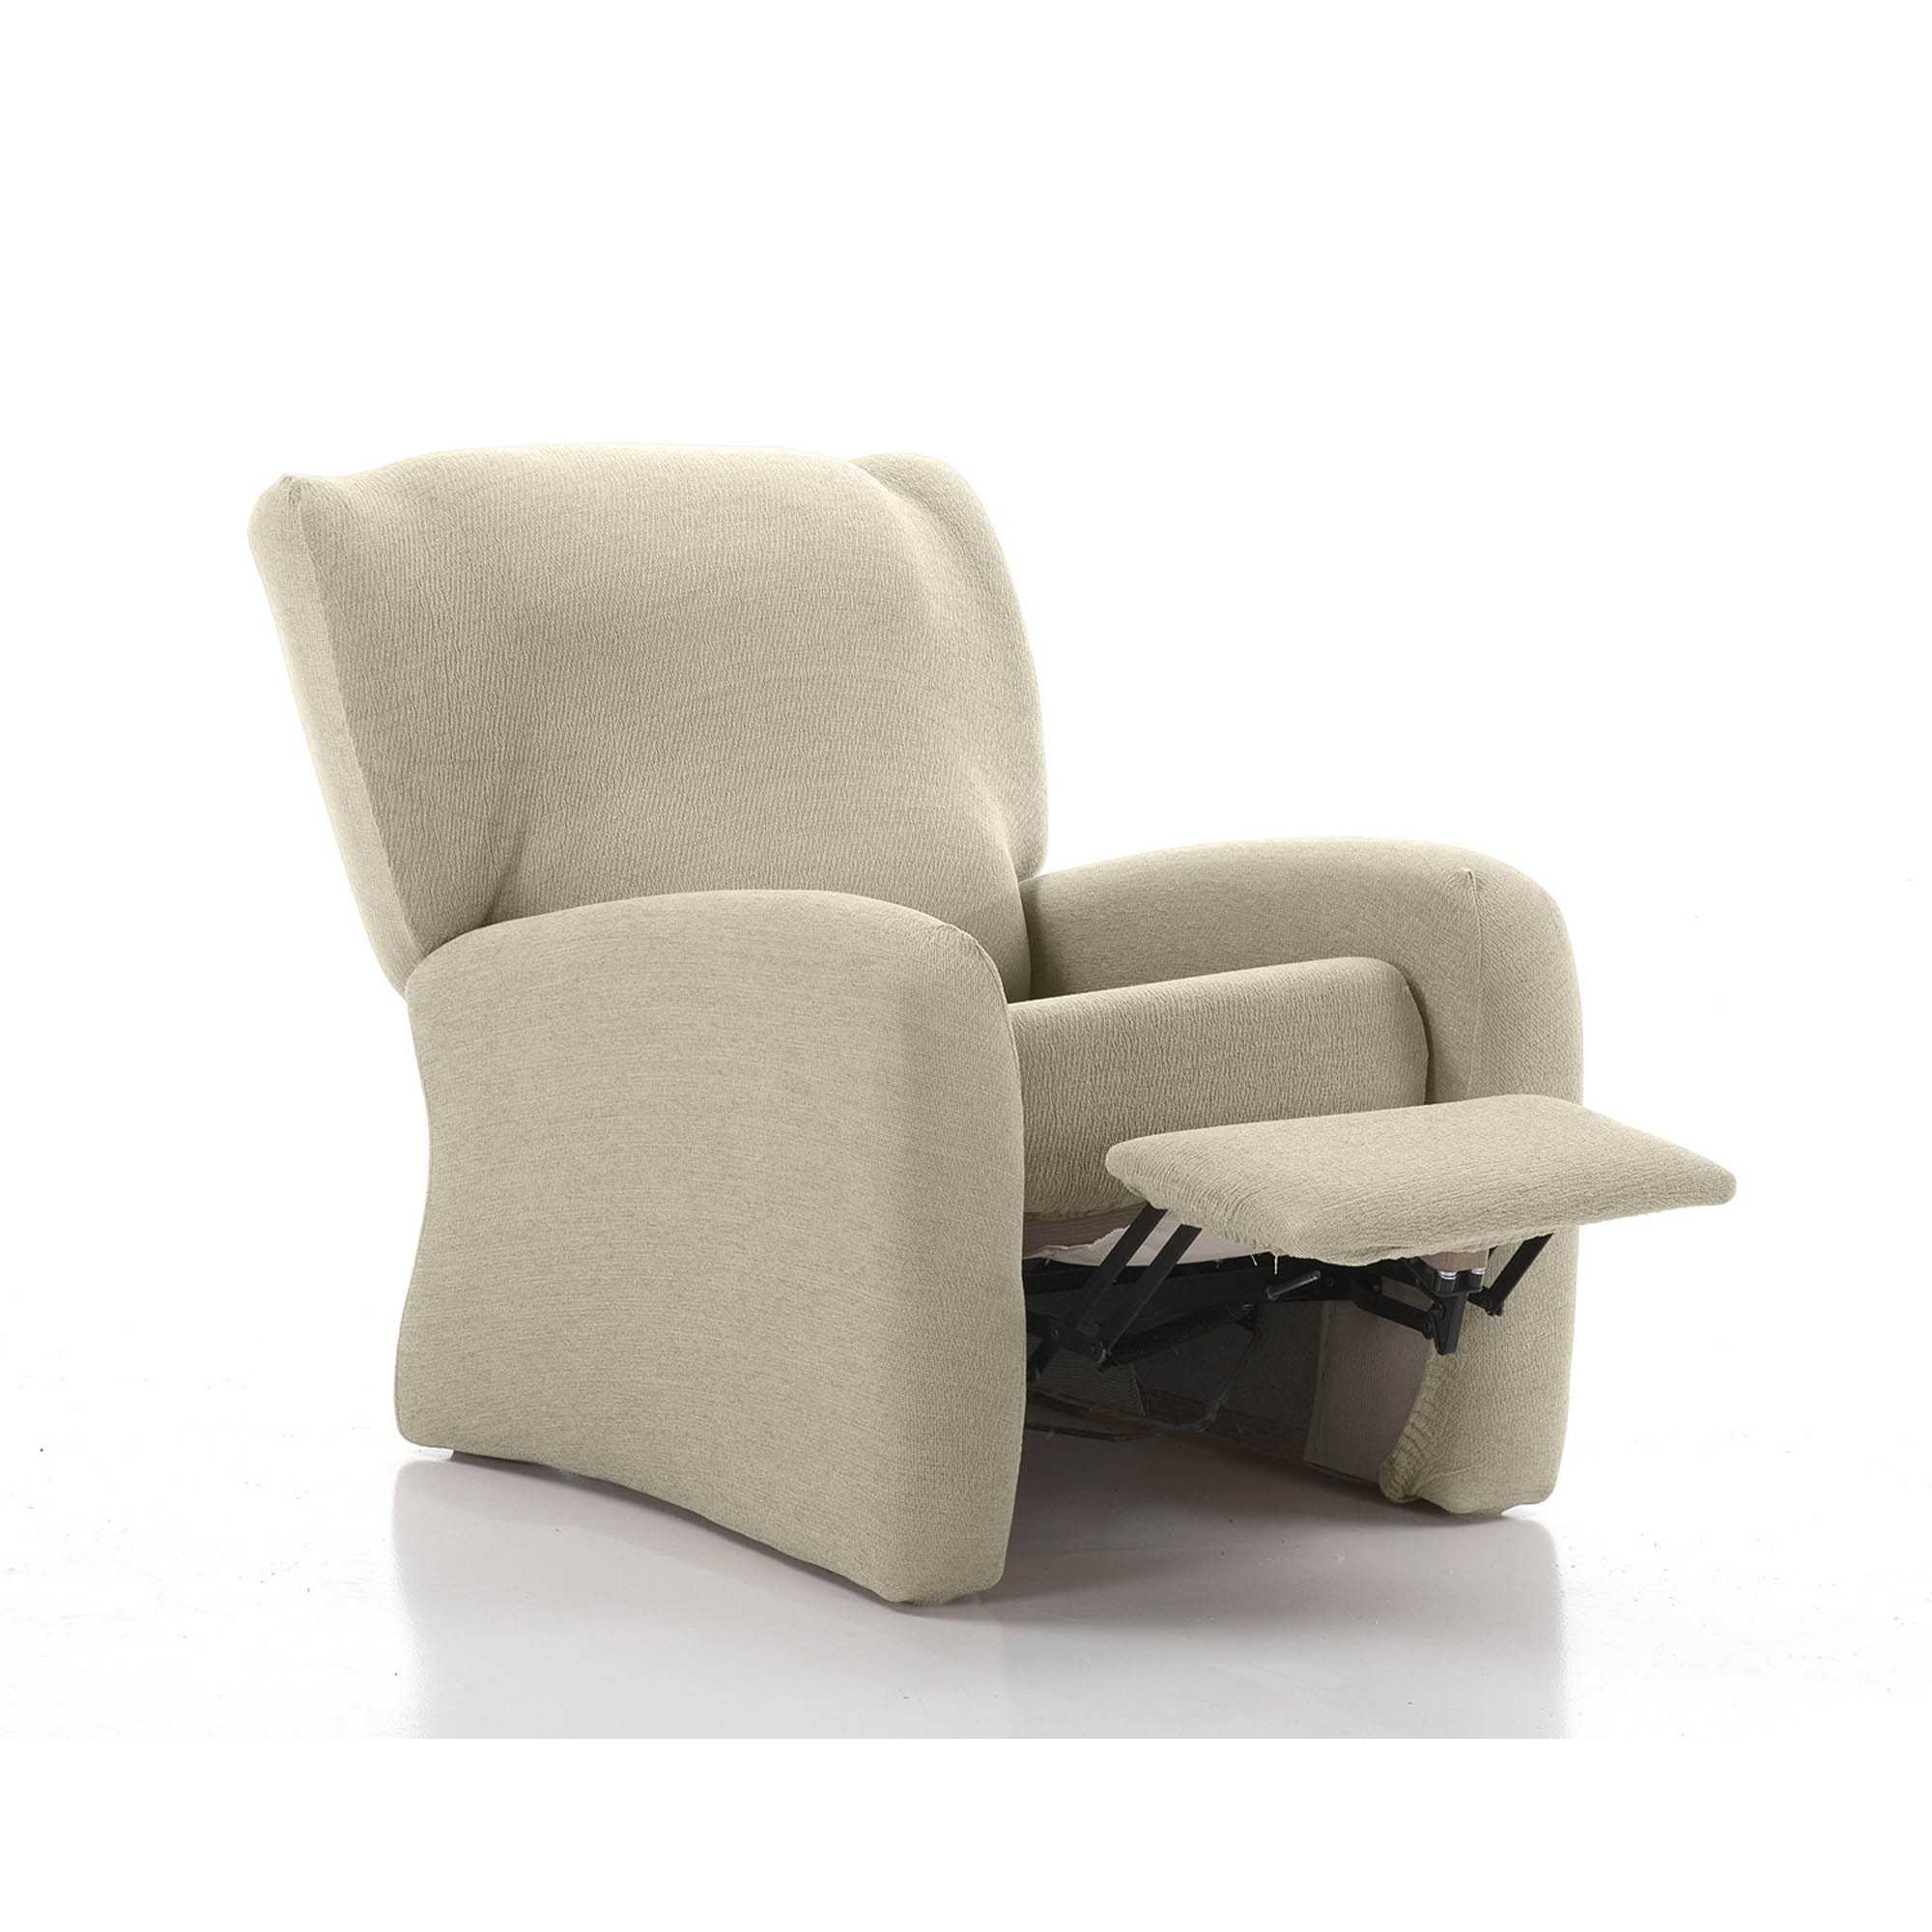 FUNDA SOFÁ SILLON RELAX ENZO NATURAL 1 PLAZA